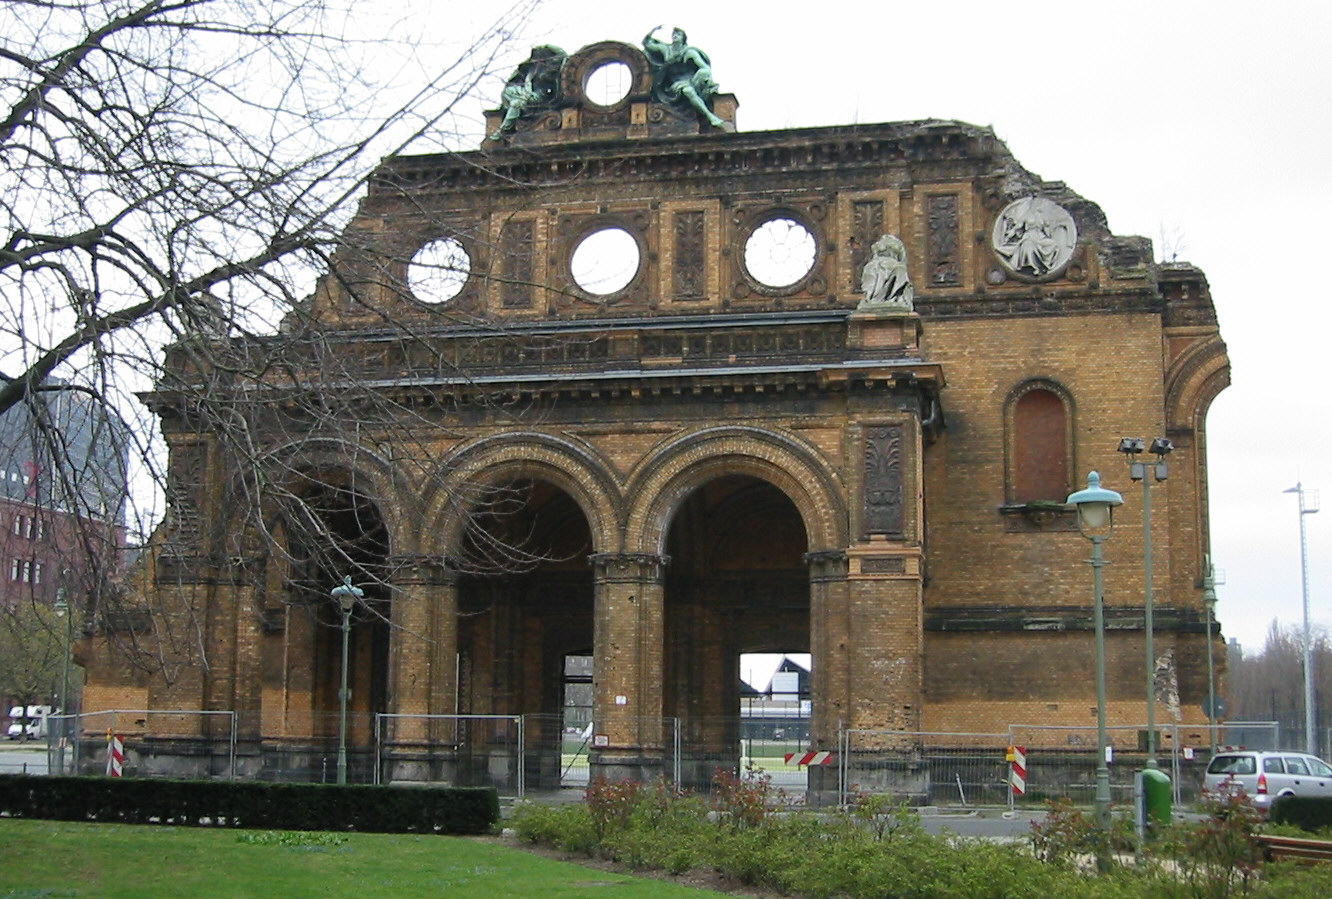 File:Train station Berlin Anhalter Bahnhof Cladding.jpg.